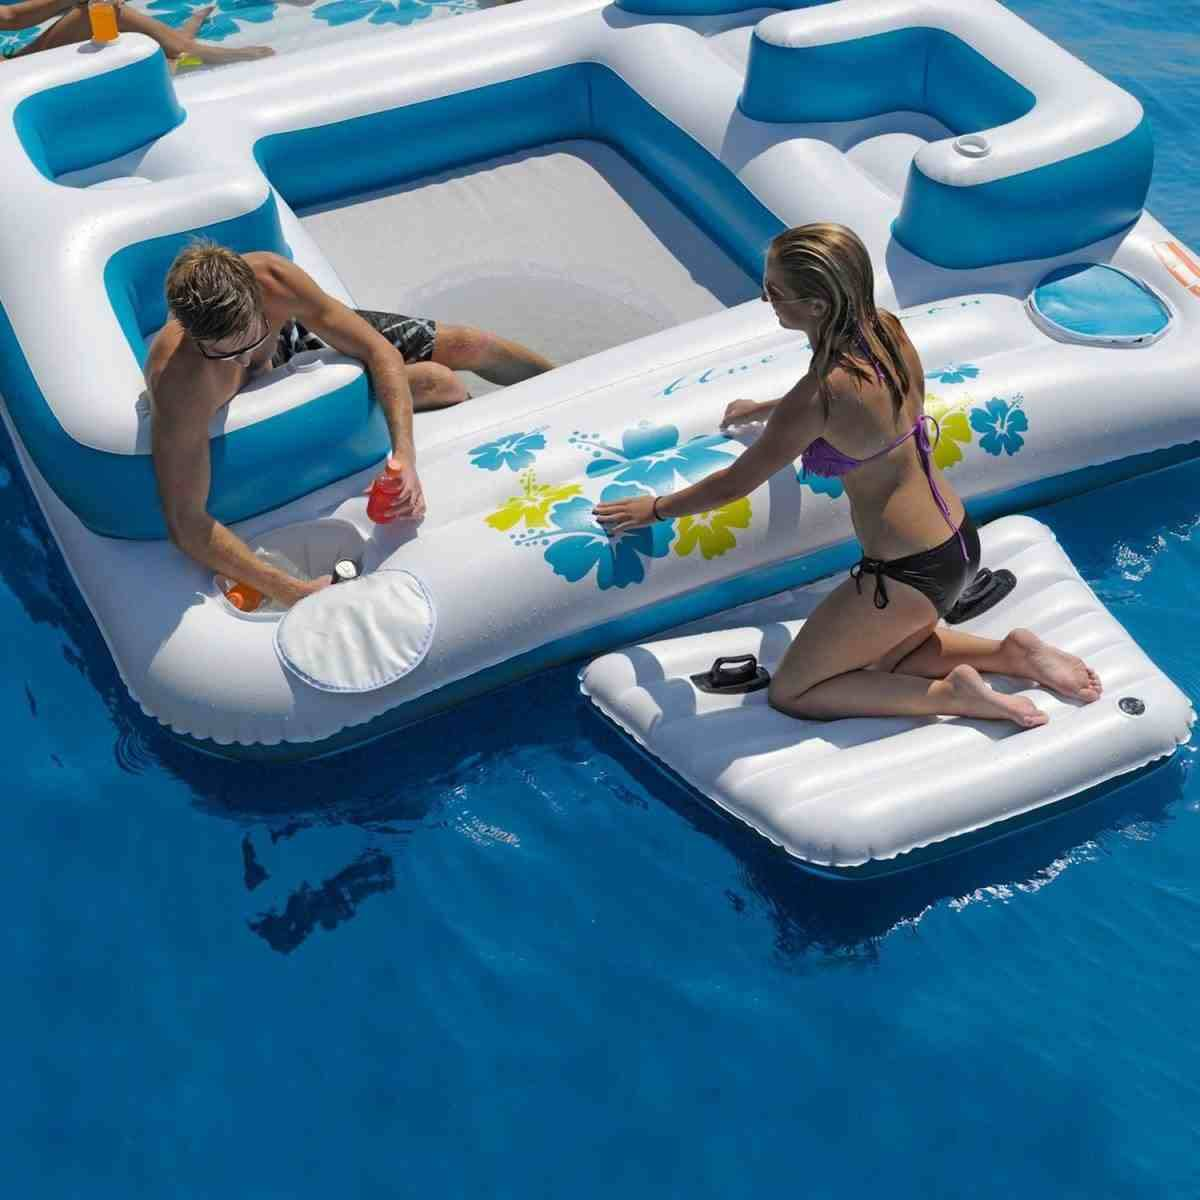 Inflatable Floating Island For Pool Parties  XciteFunnet